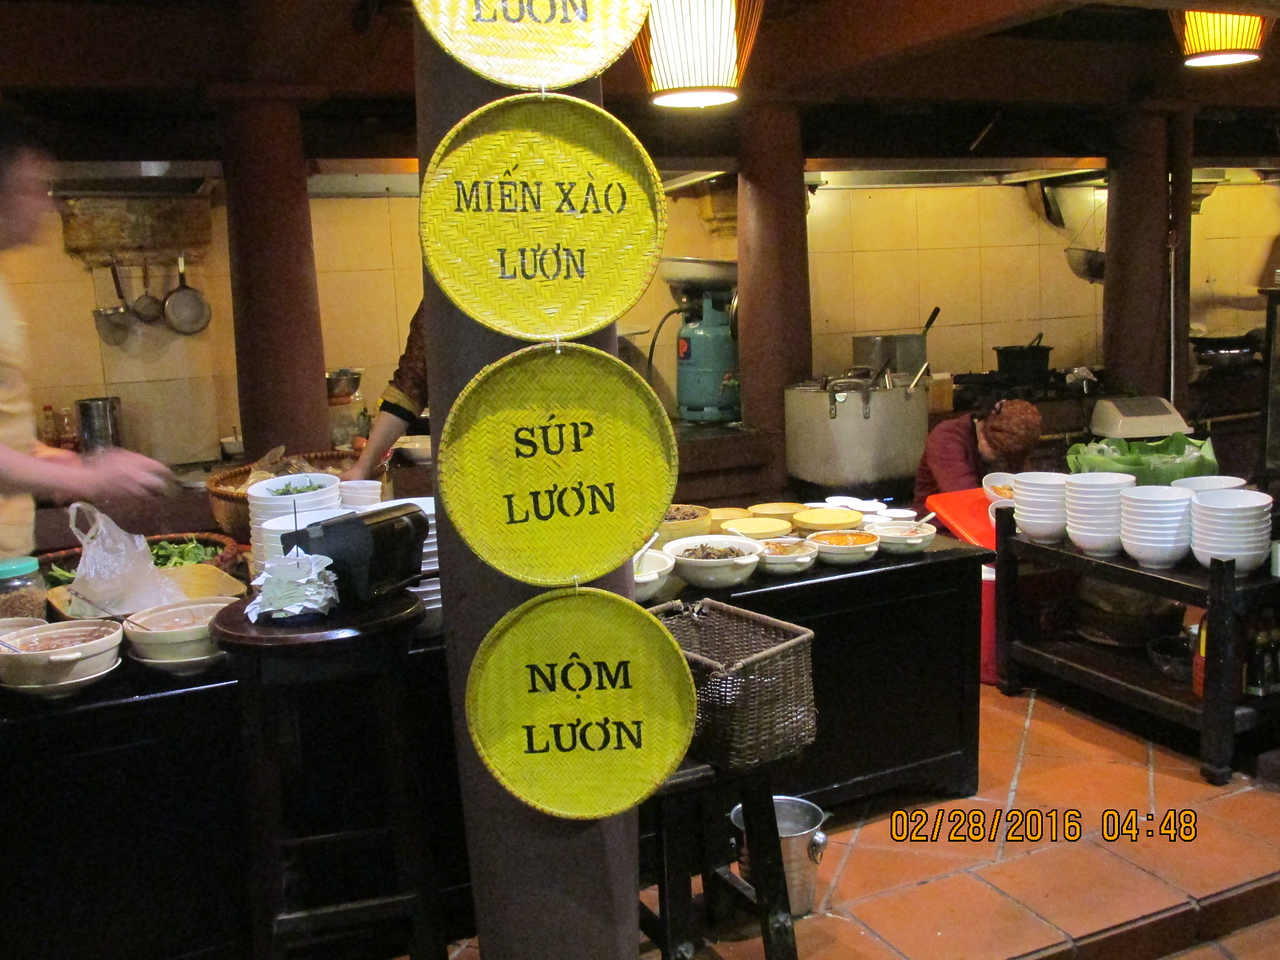 0063 - Quan An Ngon Restaurant on Phan Boi Chau - Hanoi Vietnam - Date Correct but Time on Pic is Wrong